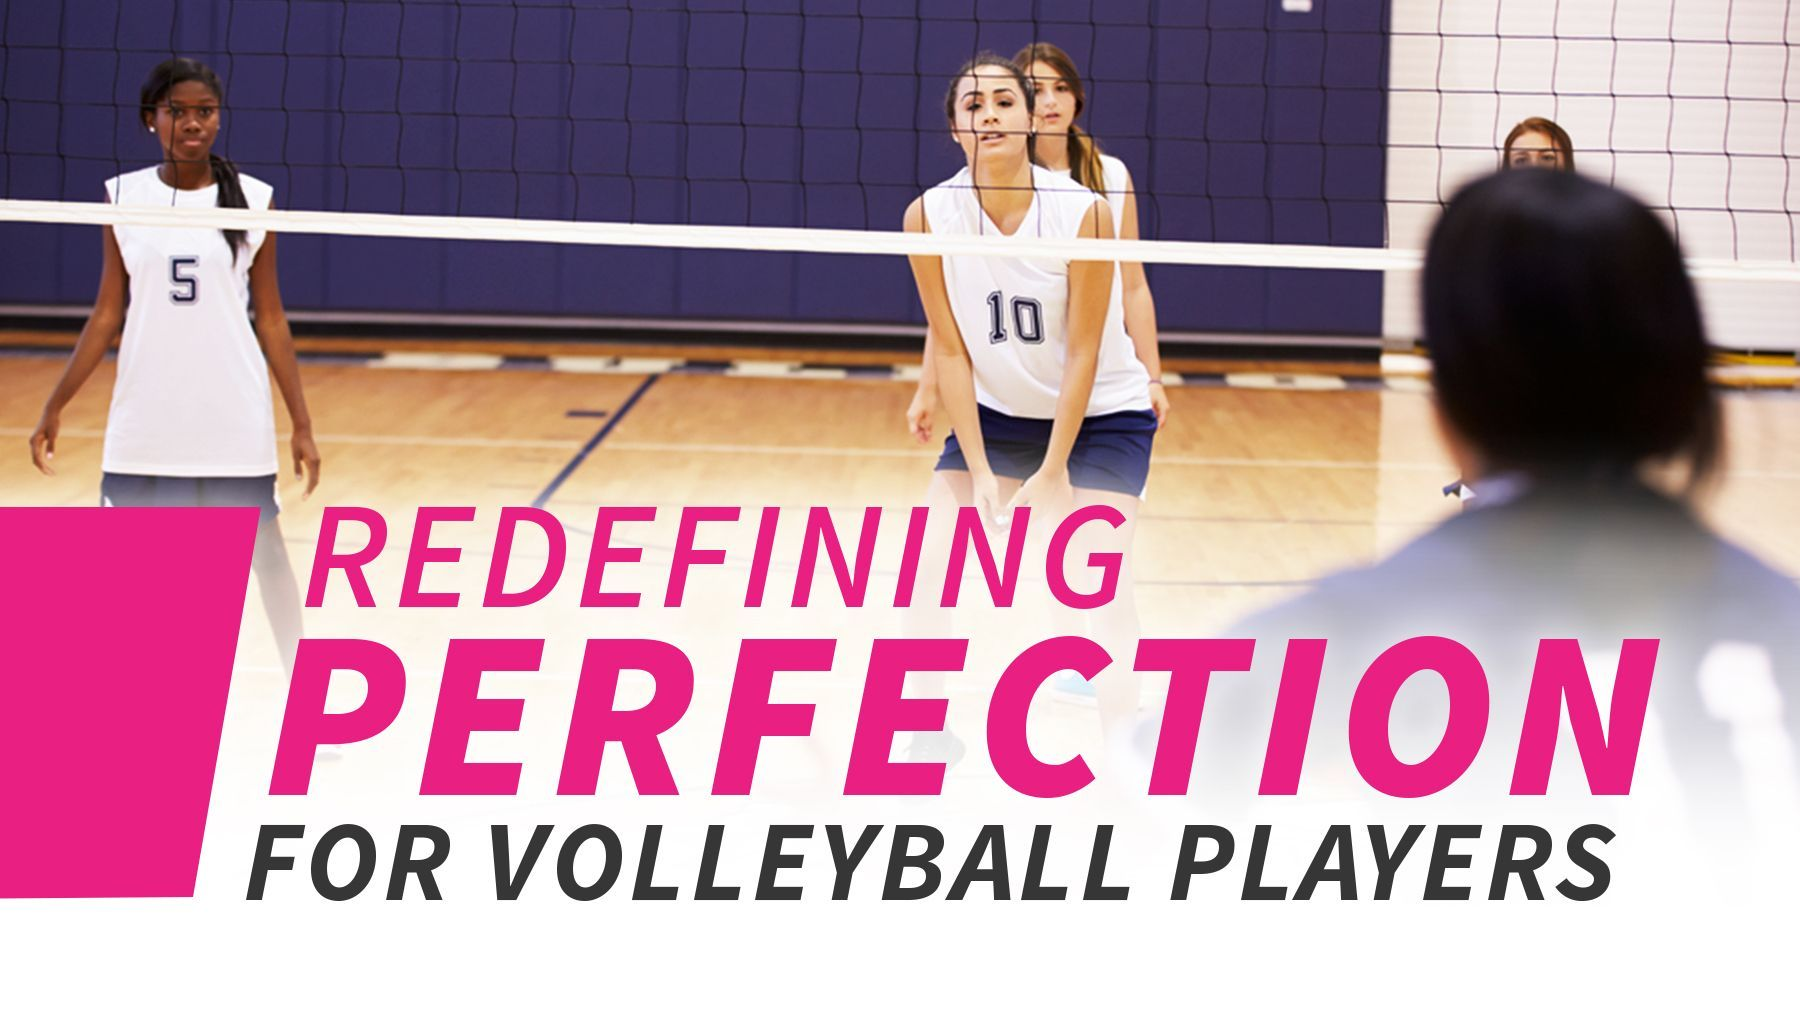 Andrea Becker Redefining Perfection For Volleyball Players The Art Of Coaching Volleyball Volleyball Players Coaching Volleyball Volleyball